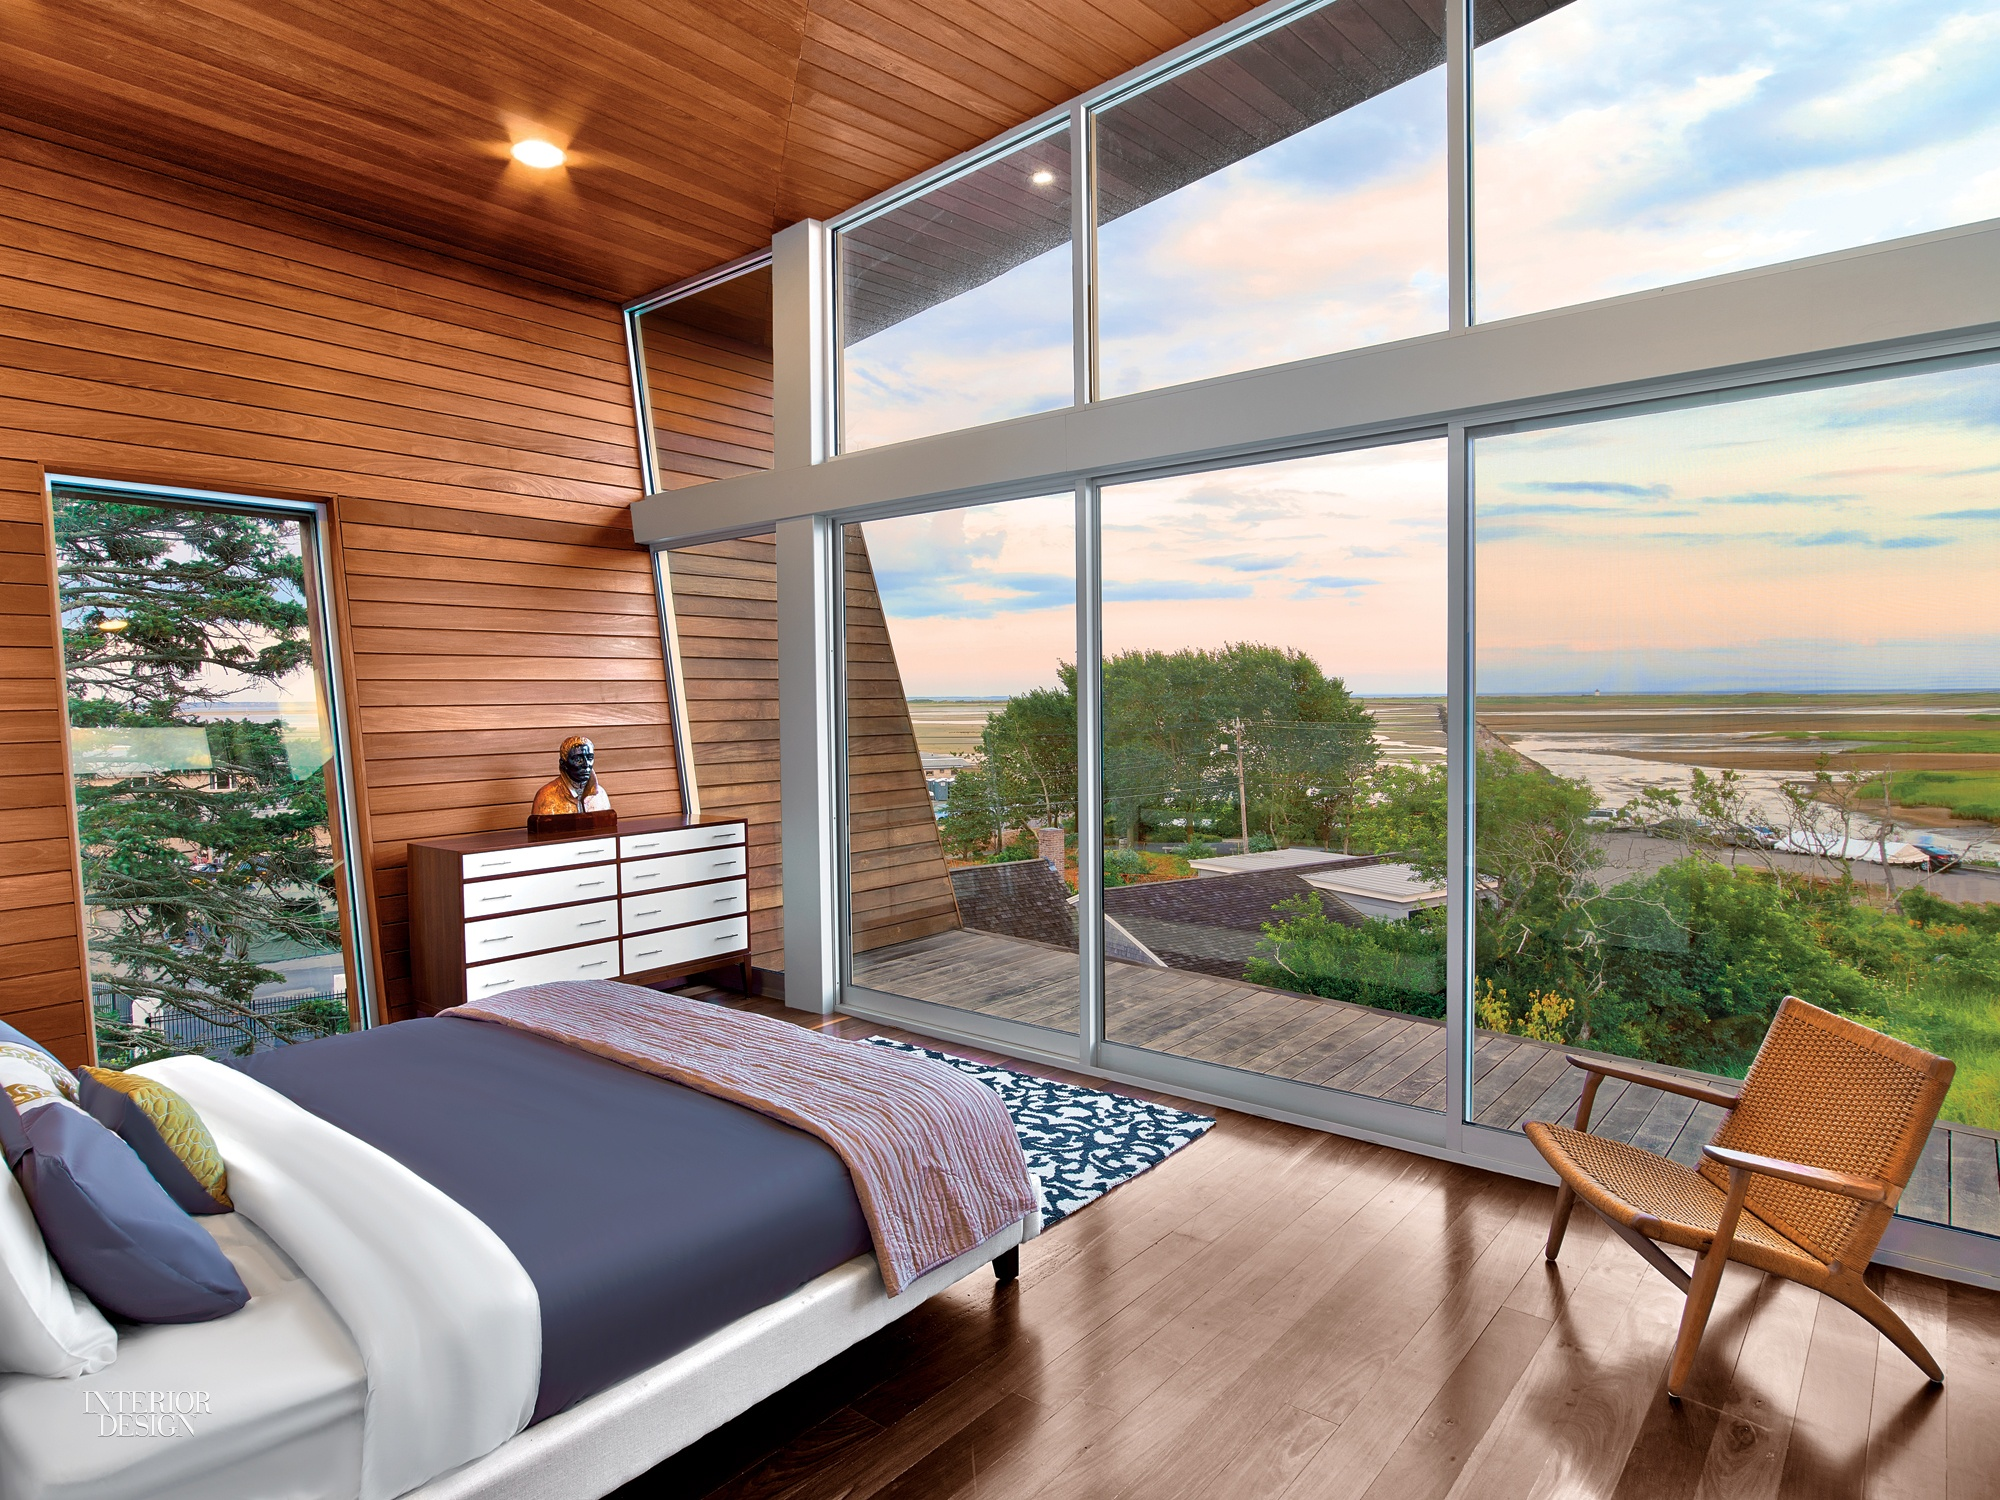 10 Bright And Modern Beach Houses